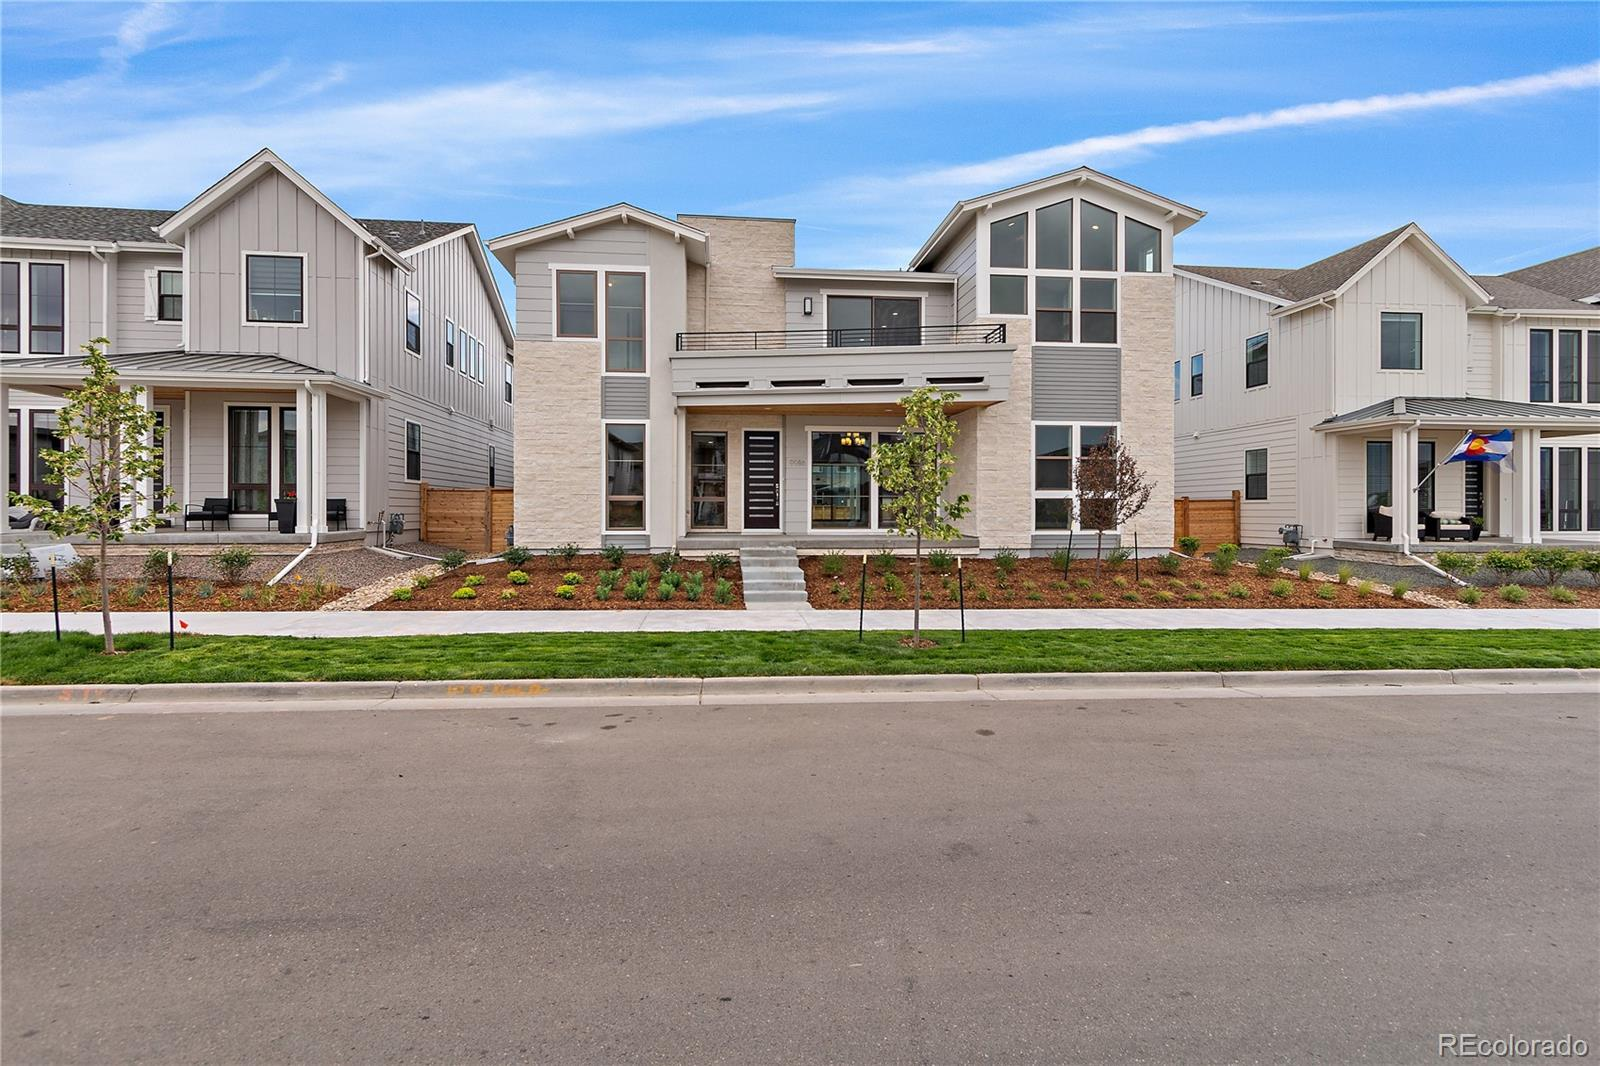 """Soaring, light-filled space lends a dramatic impact upon entering this spectacular LUXE 2 home. A main floor bedroom suite offers flexibility, quiet privacy and multi-generational needs. And seamless transitions from indoors to out increase the already generous square footage in an impressive way.  The large chef's kitchen features high-end Thermador appliances, including separate fridge and freezer columns, as well as a 48"""" range top.  Sophisticated cabinetry and upgraded quartz completes a dream kitchen.   Beautiful hardwood floors cover significant portions of the main level and extend up the stairs and into the master bedroom.  The spa-like master bath features separate vanities, multiple shower heads and a massive walk-in closet with built-ins.  Ready for immediate move-in, this luxurious urban estate is located within steps of Stapleton's newest pool and park"""